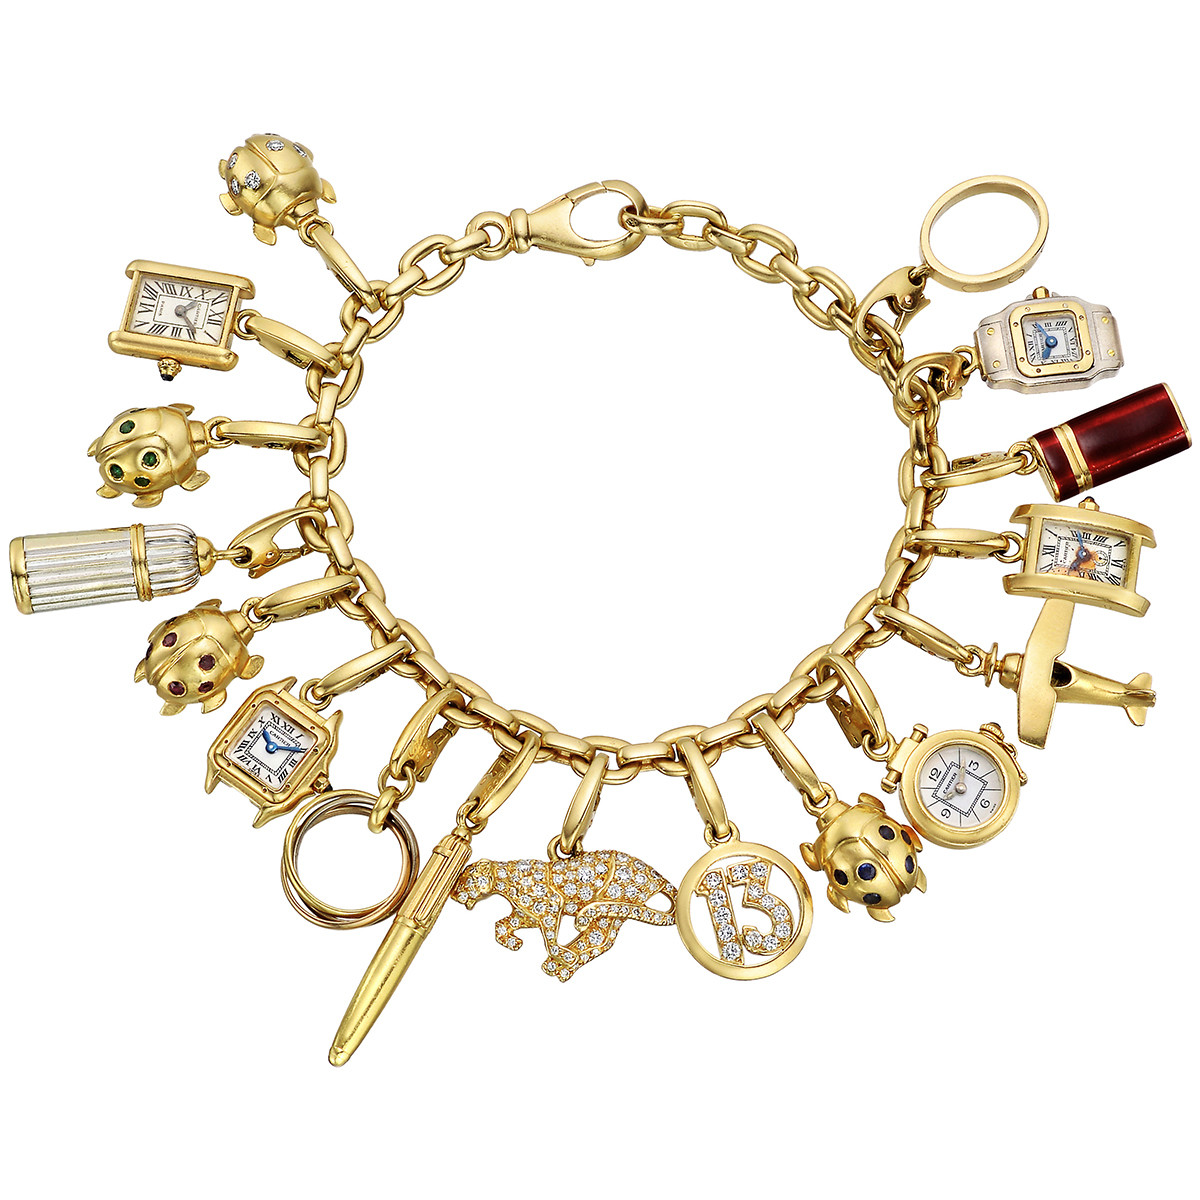 Antique Gold Charm Bracelet: Estate Jewelry